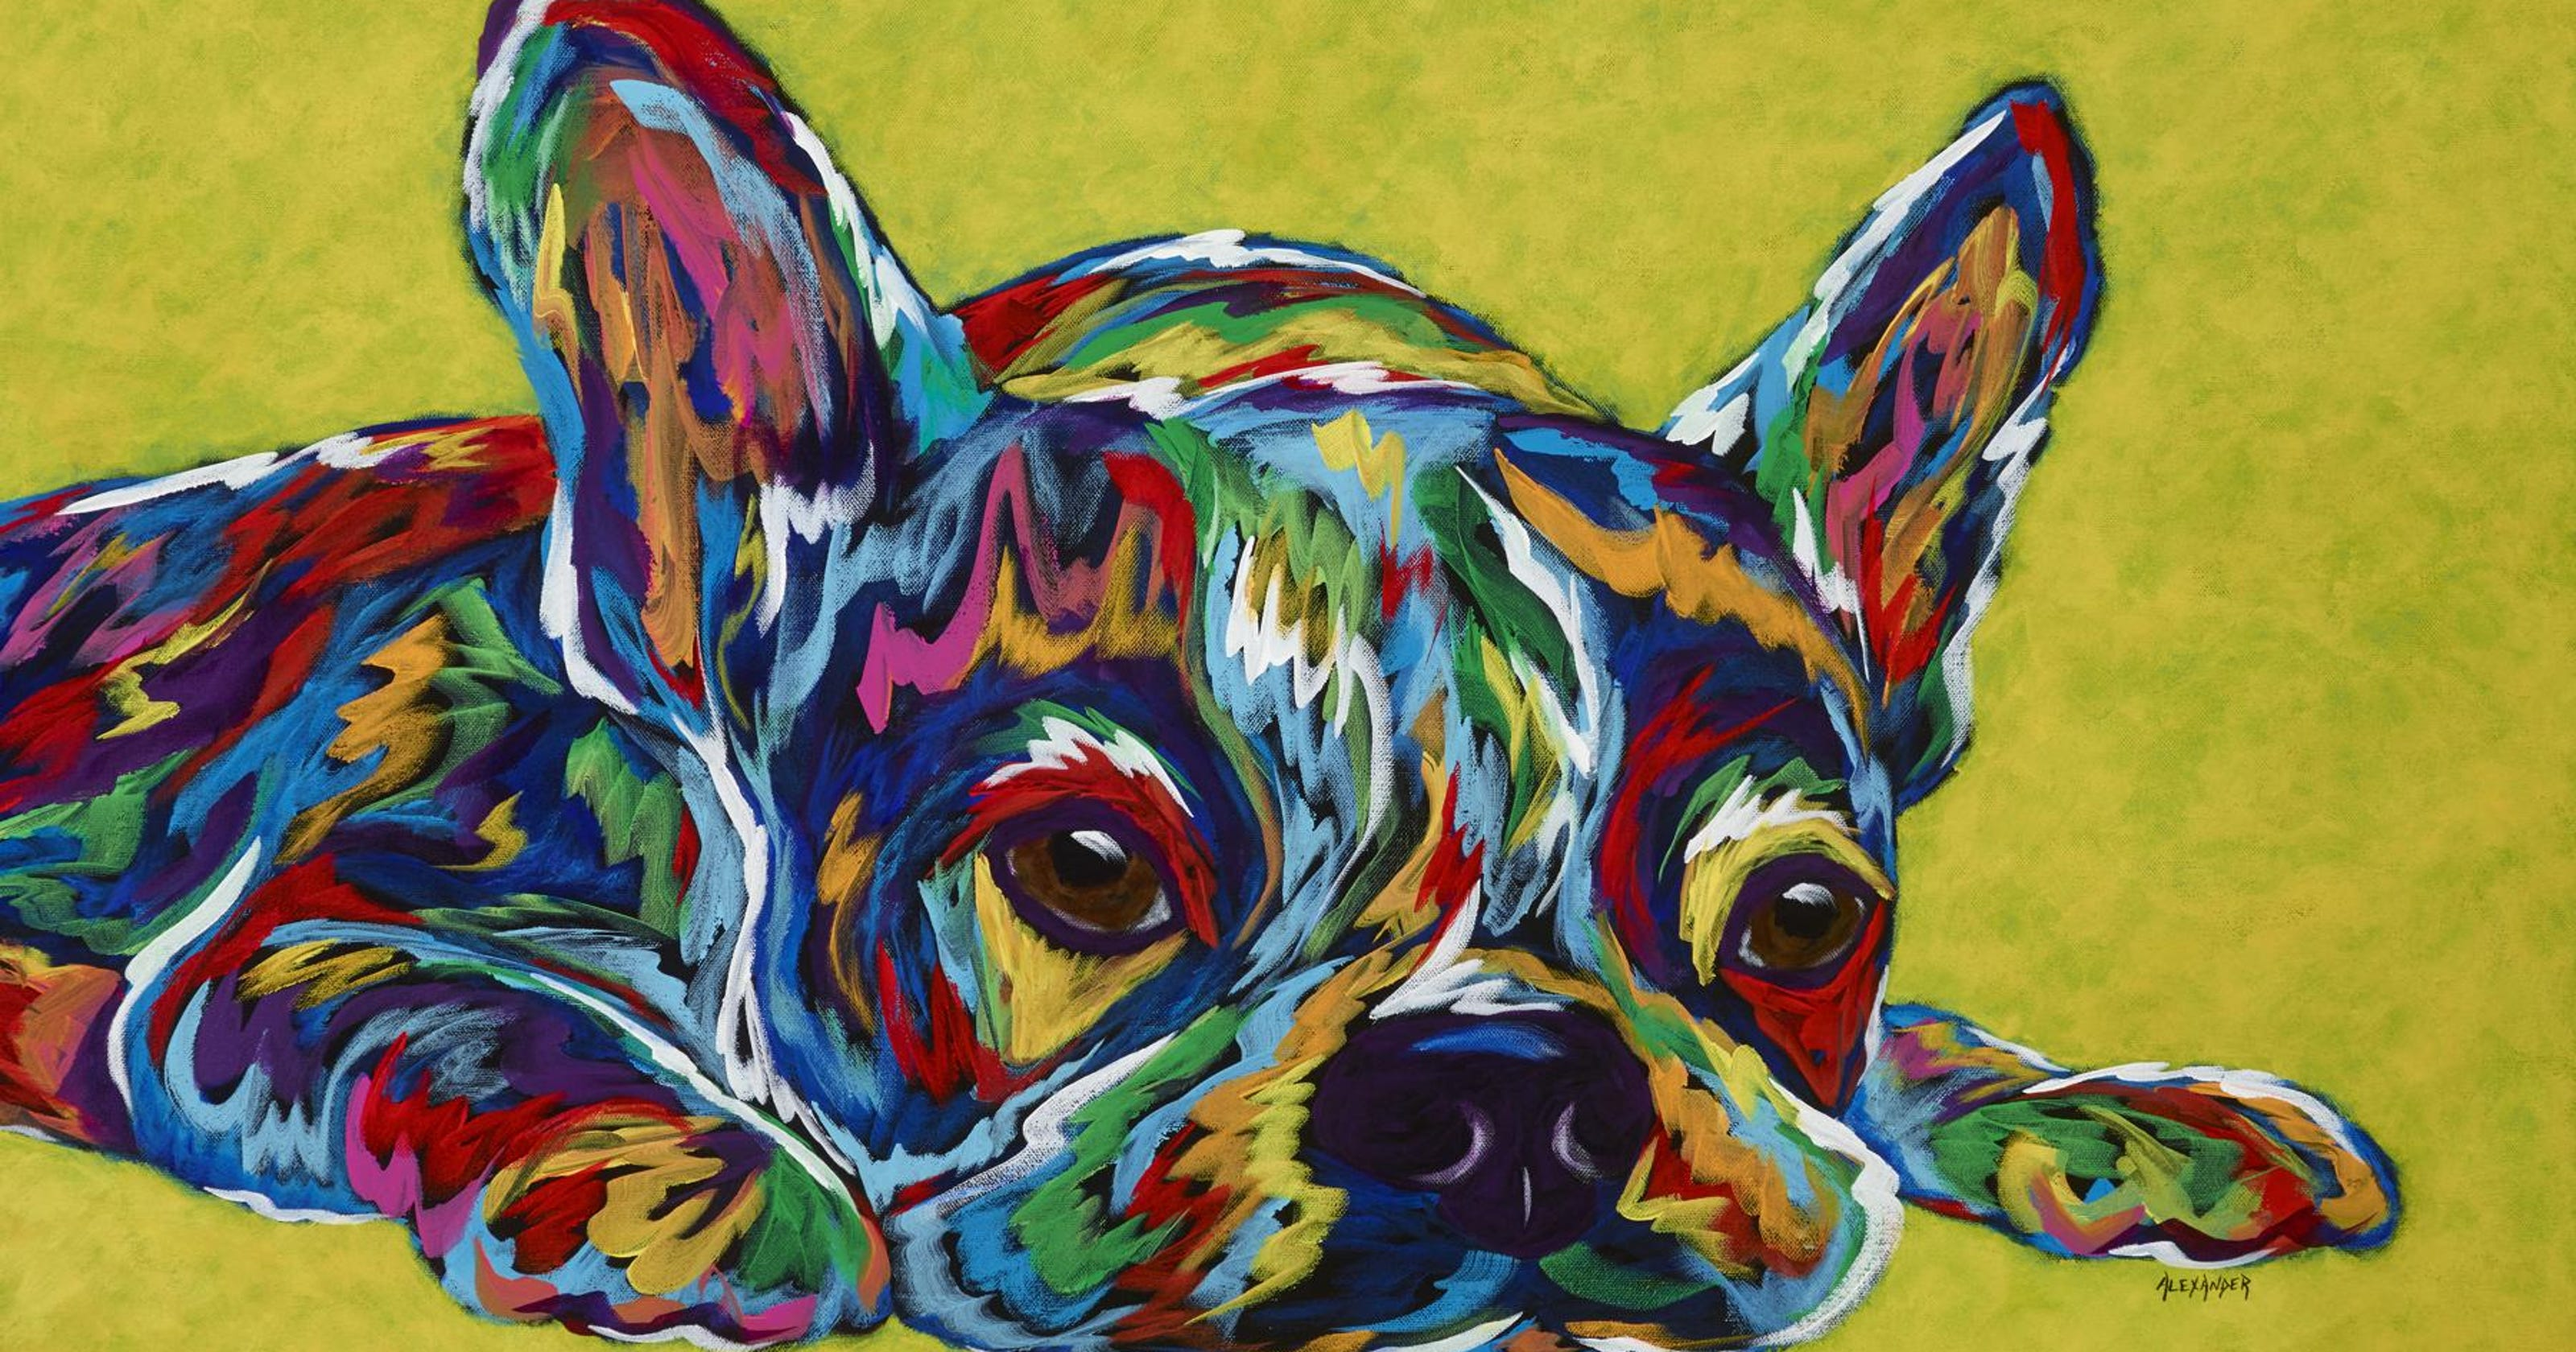 Art openings, classes, events in and around Asheville